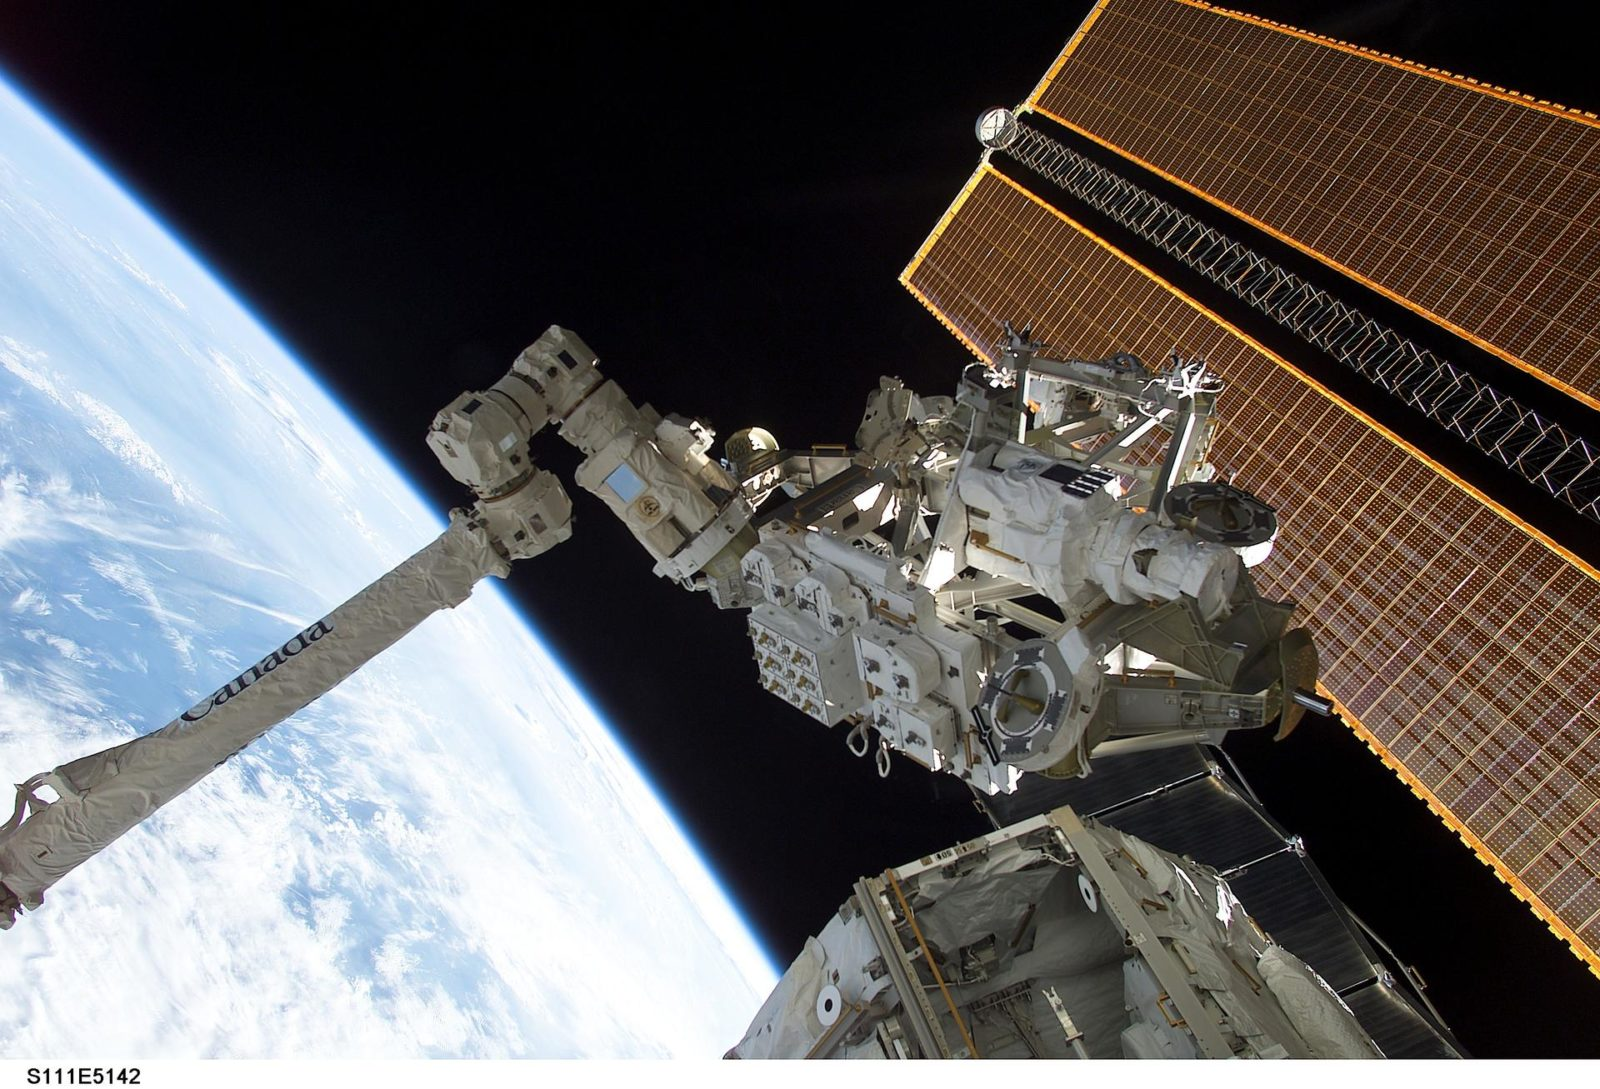 MBS grappled to the Canadarm2 SSRMS during STS-111 UF-2 installation OPS on the ISS truss structure